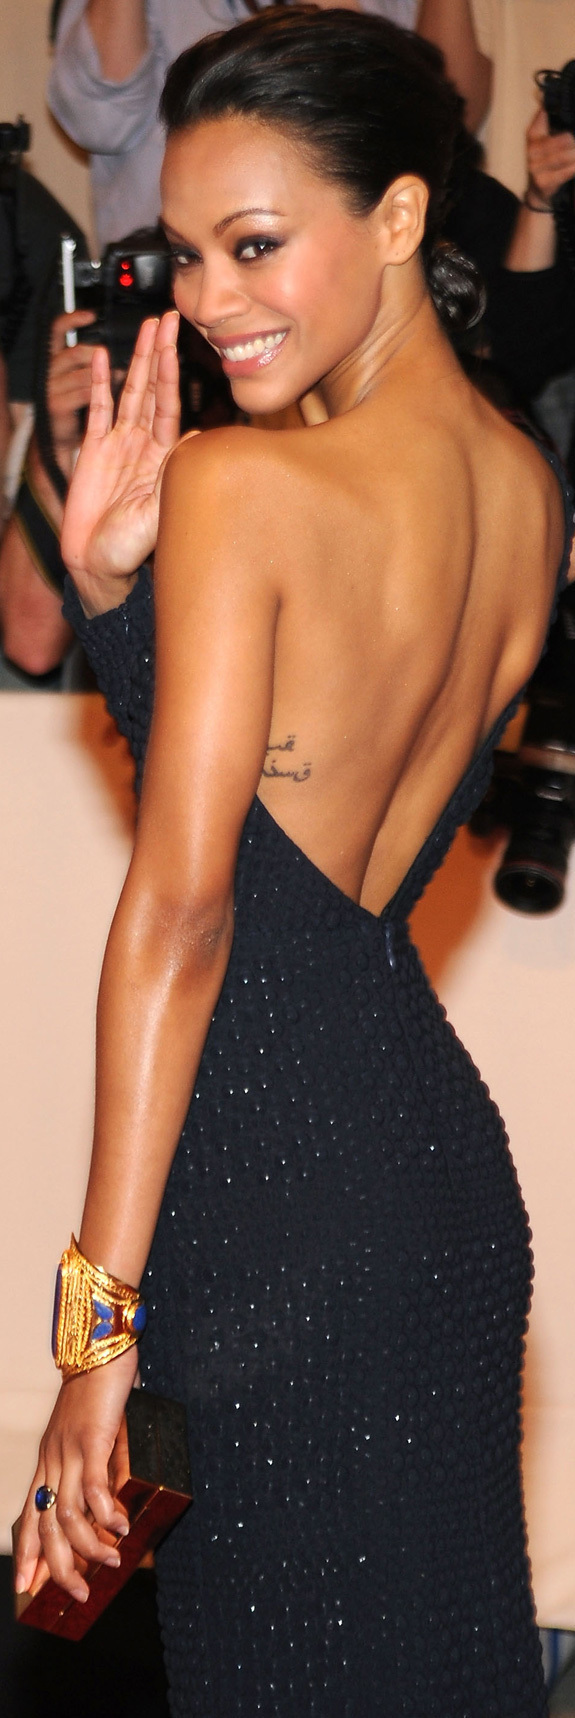 Zoe Saldanas Back Tattoo Translation Needed PHOTOS